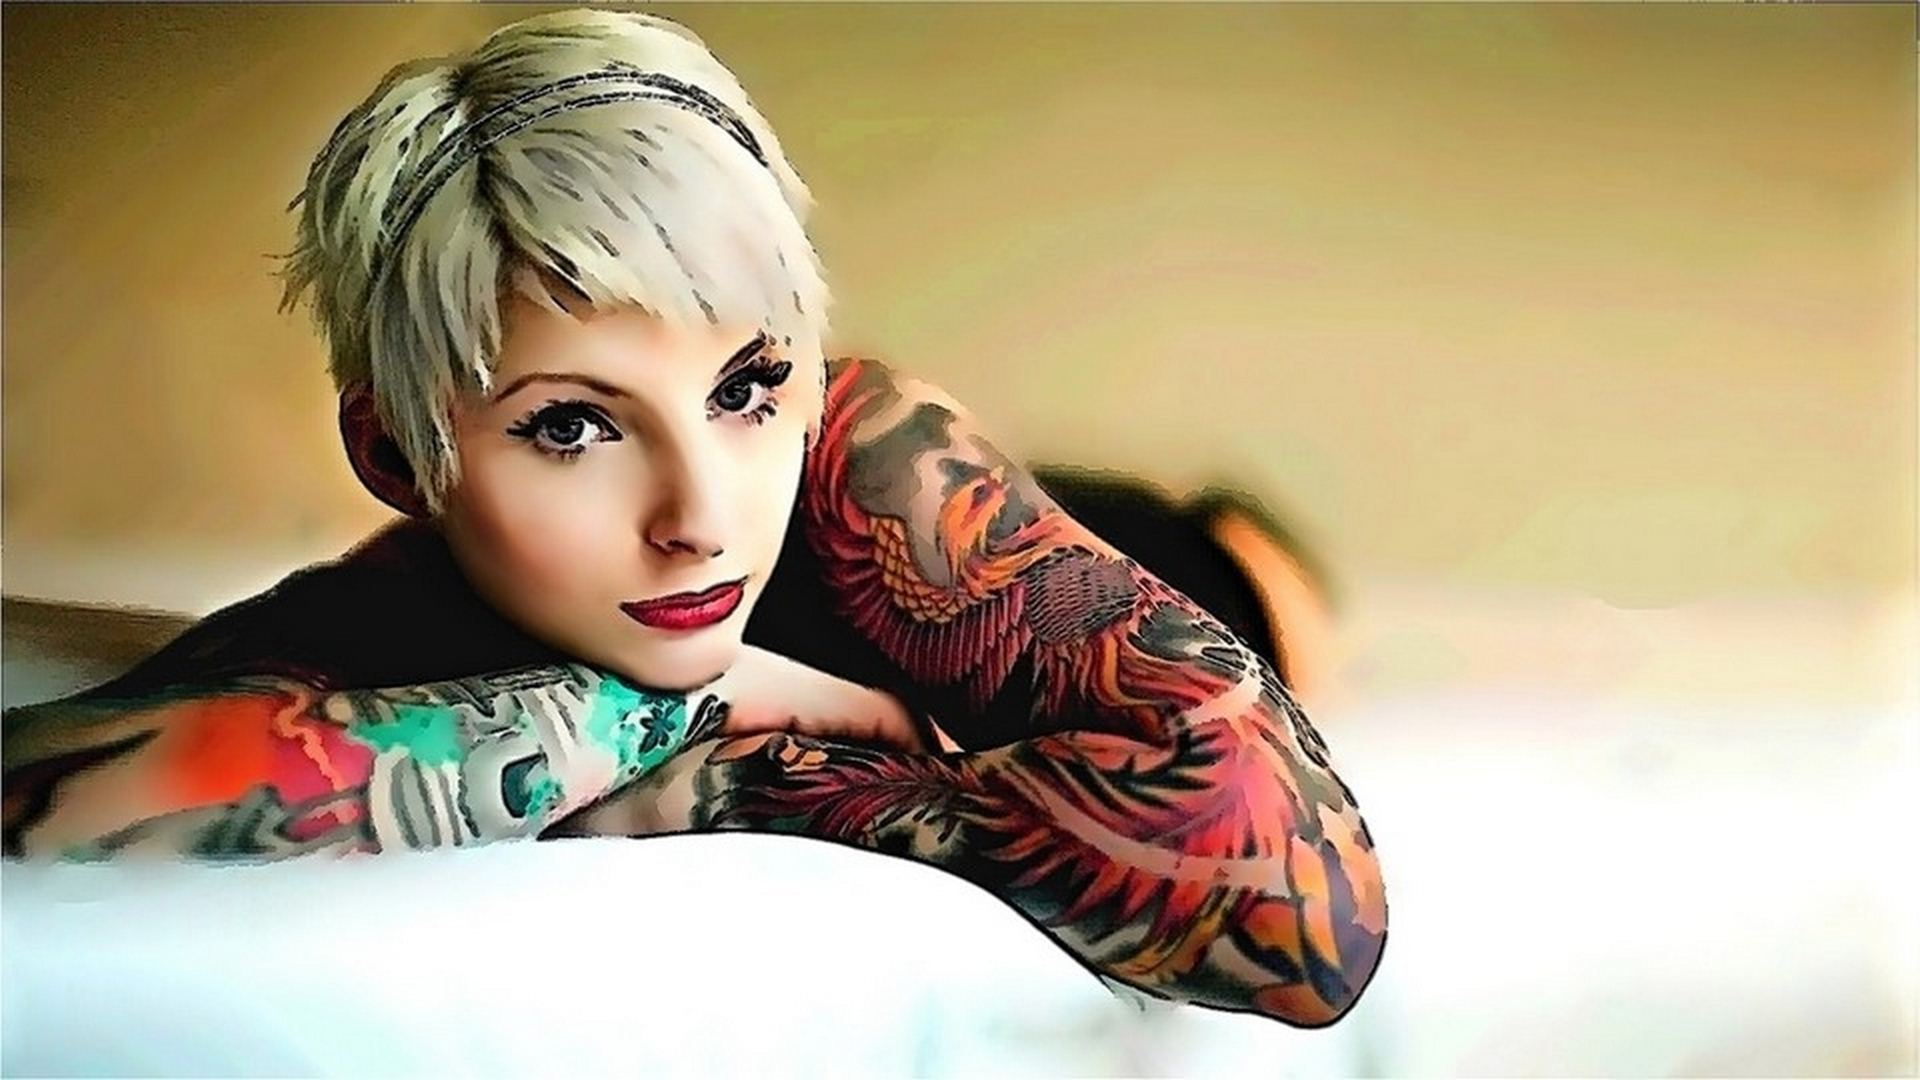 tattoo girl wallpaper